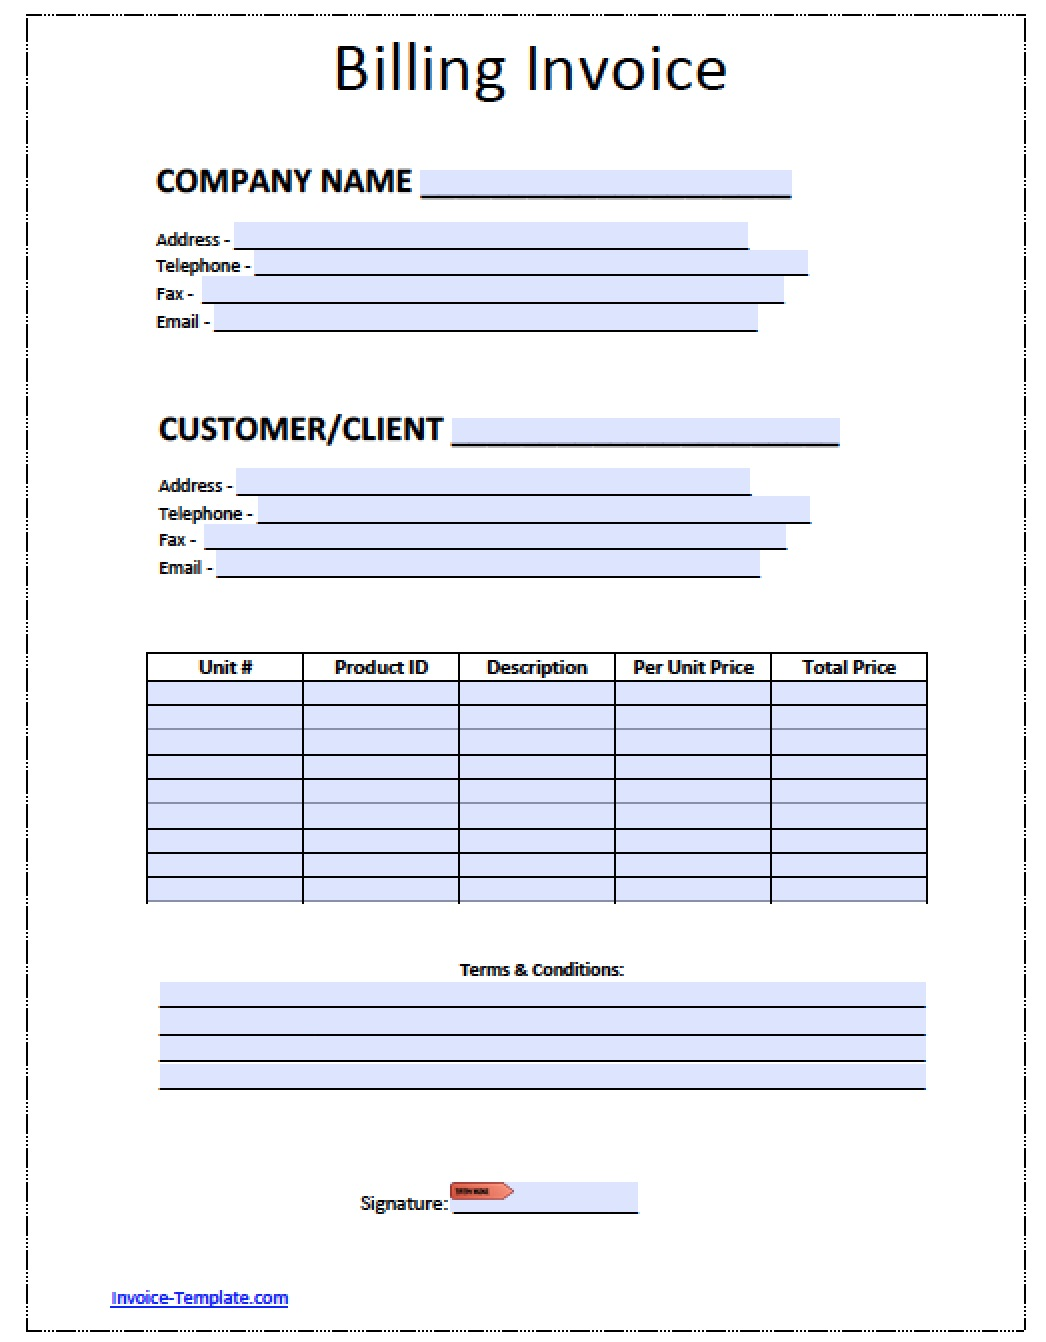 Free Blank Invoice Templates in PDF Word Excel – Sales Invoice Template Word